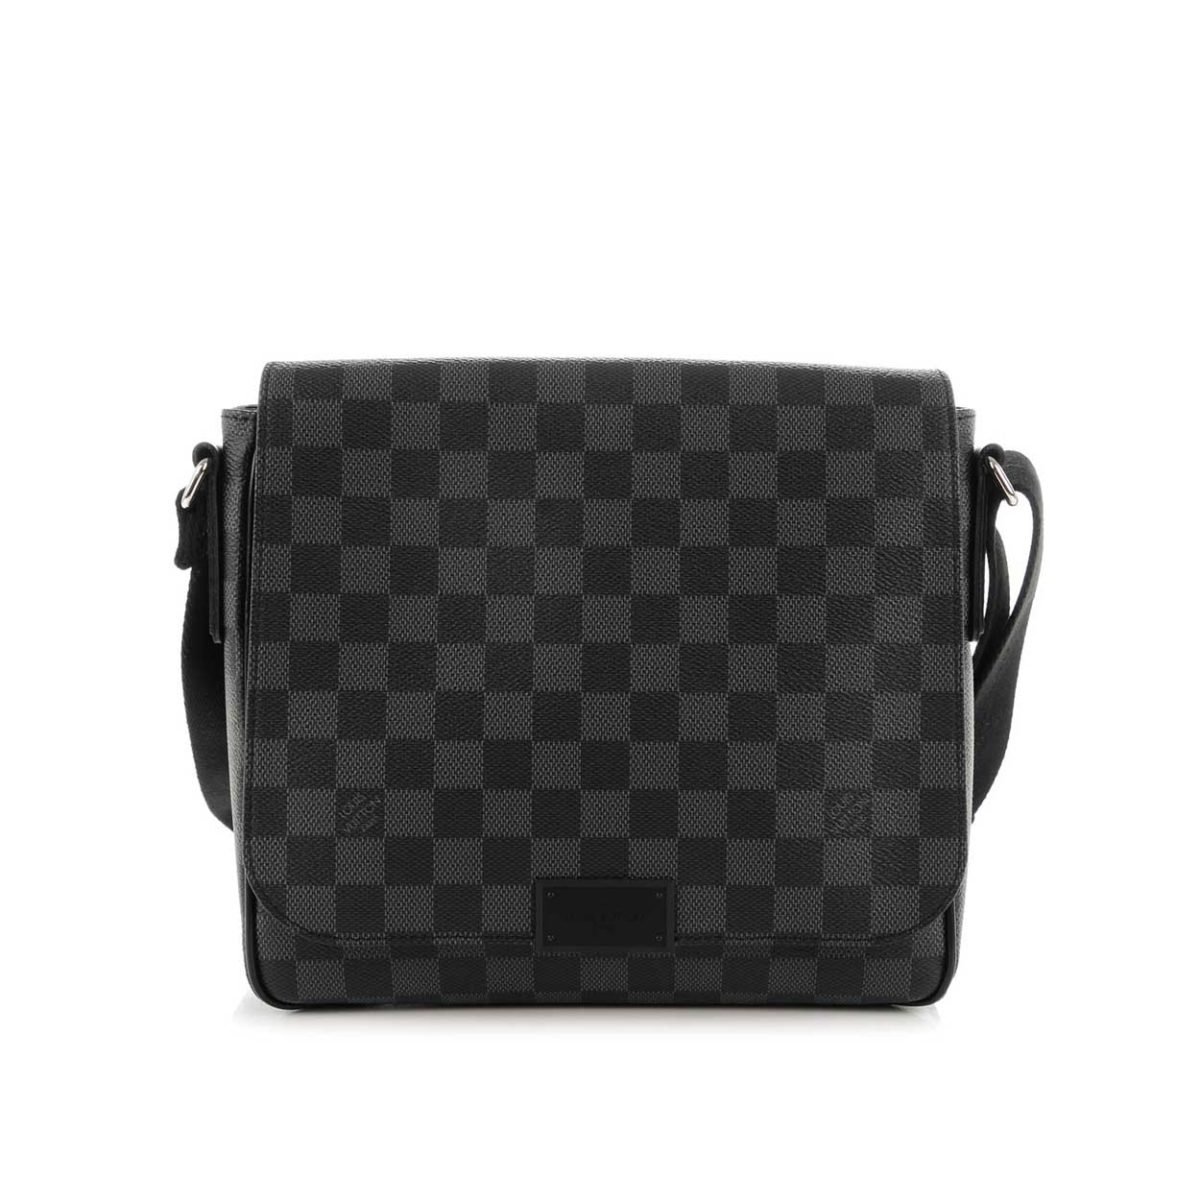 03d15ebb37a2 LOUIS VUITTON Damier Graphite District PM